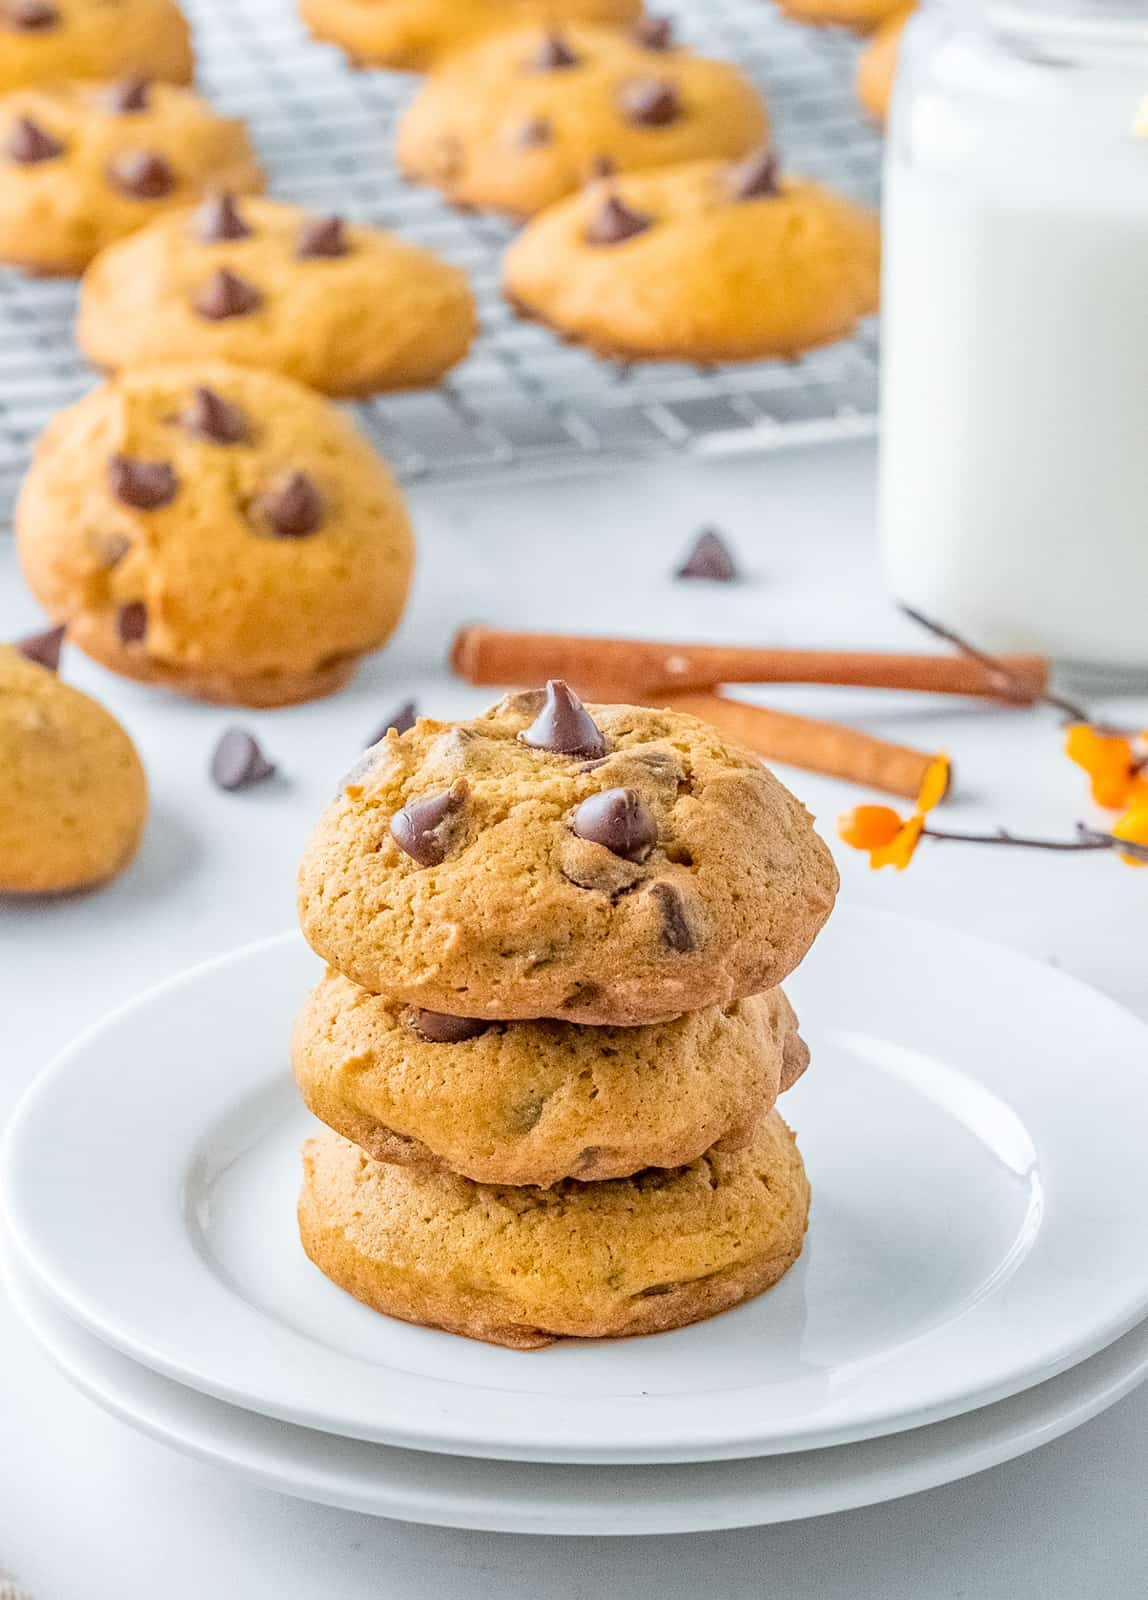 Three stacked Pumpkin Chocolate Chip Cookies on plates.